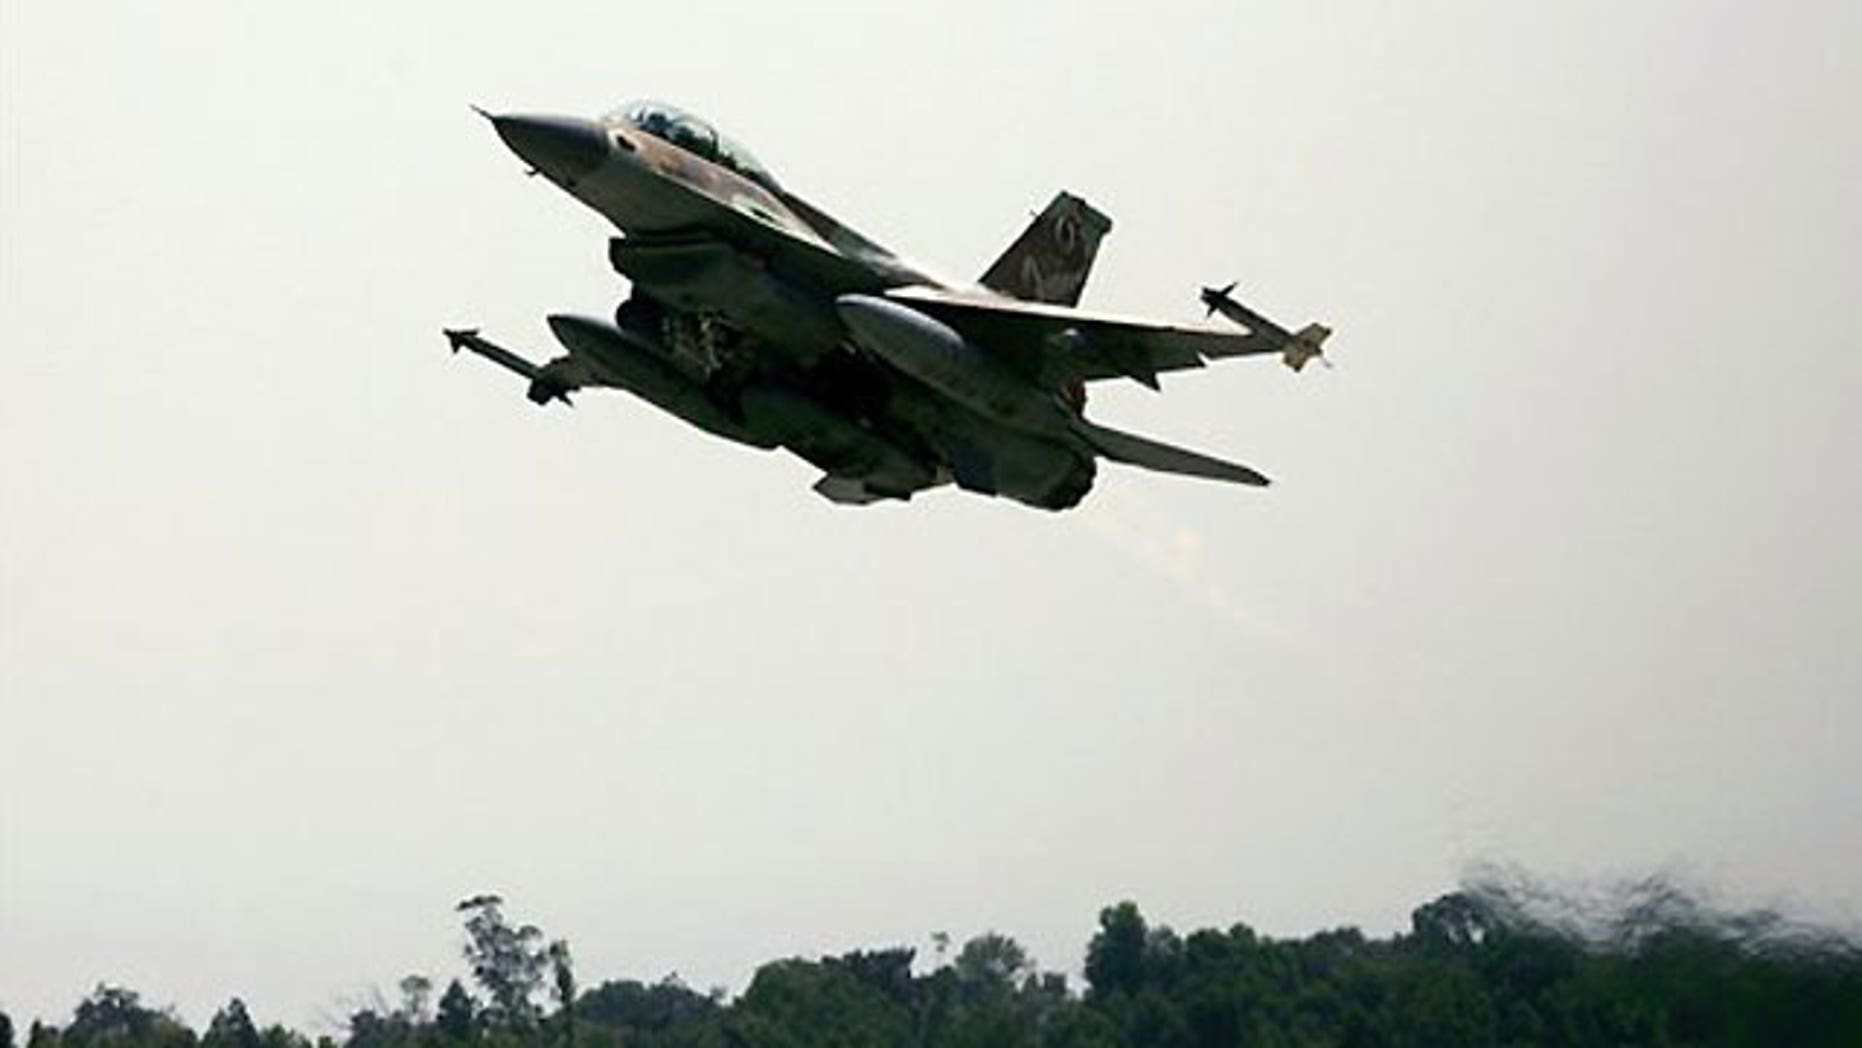 In this file photo taken Sunday, July 23, 2006, an Israeli F-16 warplane takes off from an air force base in southern Israel. On Monday, June 28, 2010, Turkey's prime minister and officials say the country has closed its airspace to some Israeli military flights following a deadly raid on a Gaza-bound aid ship.